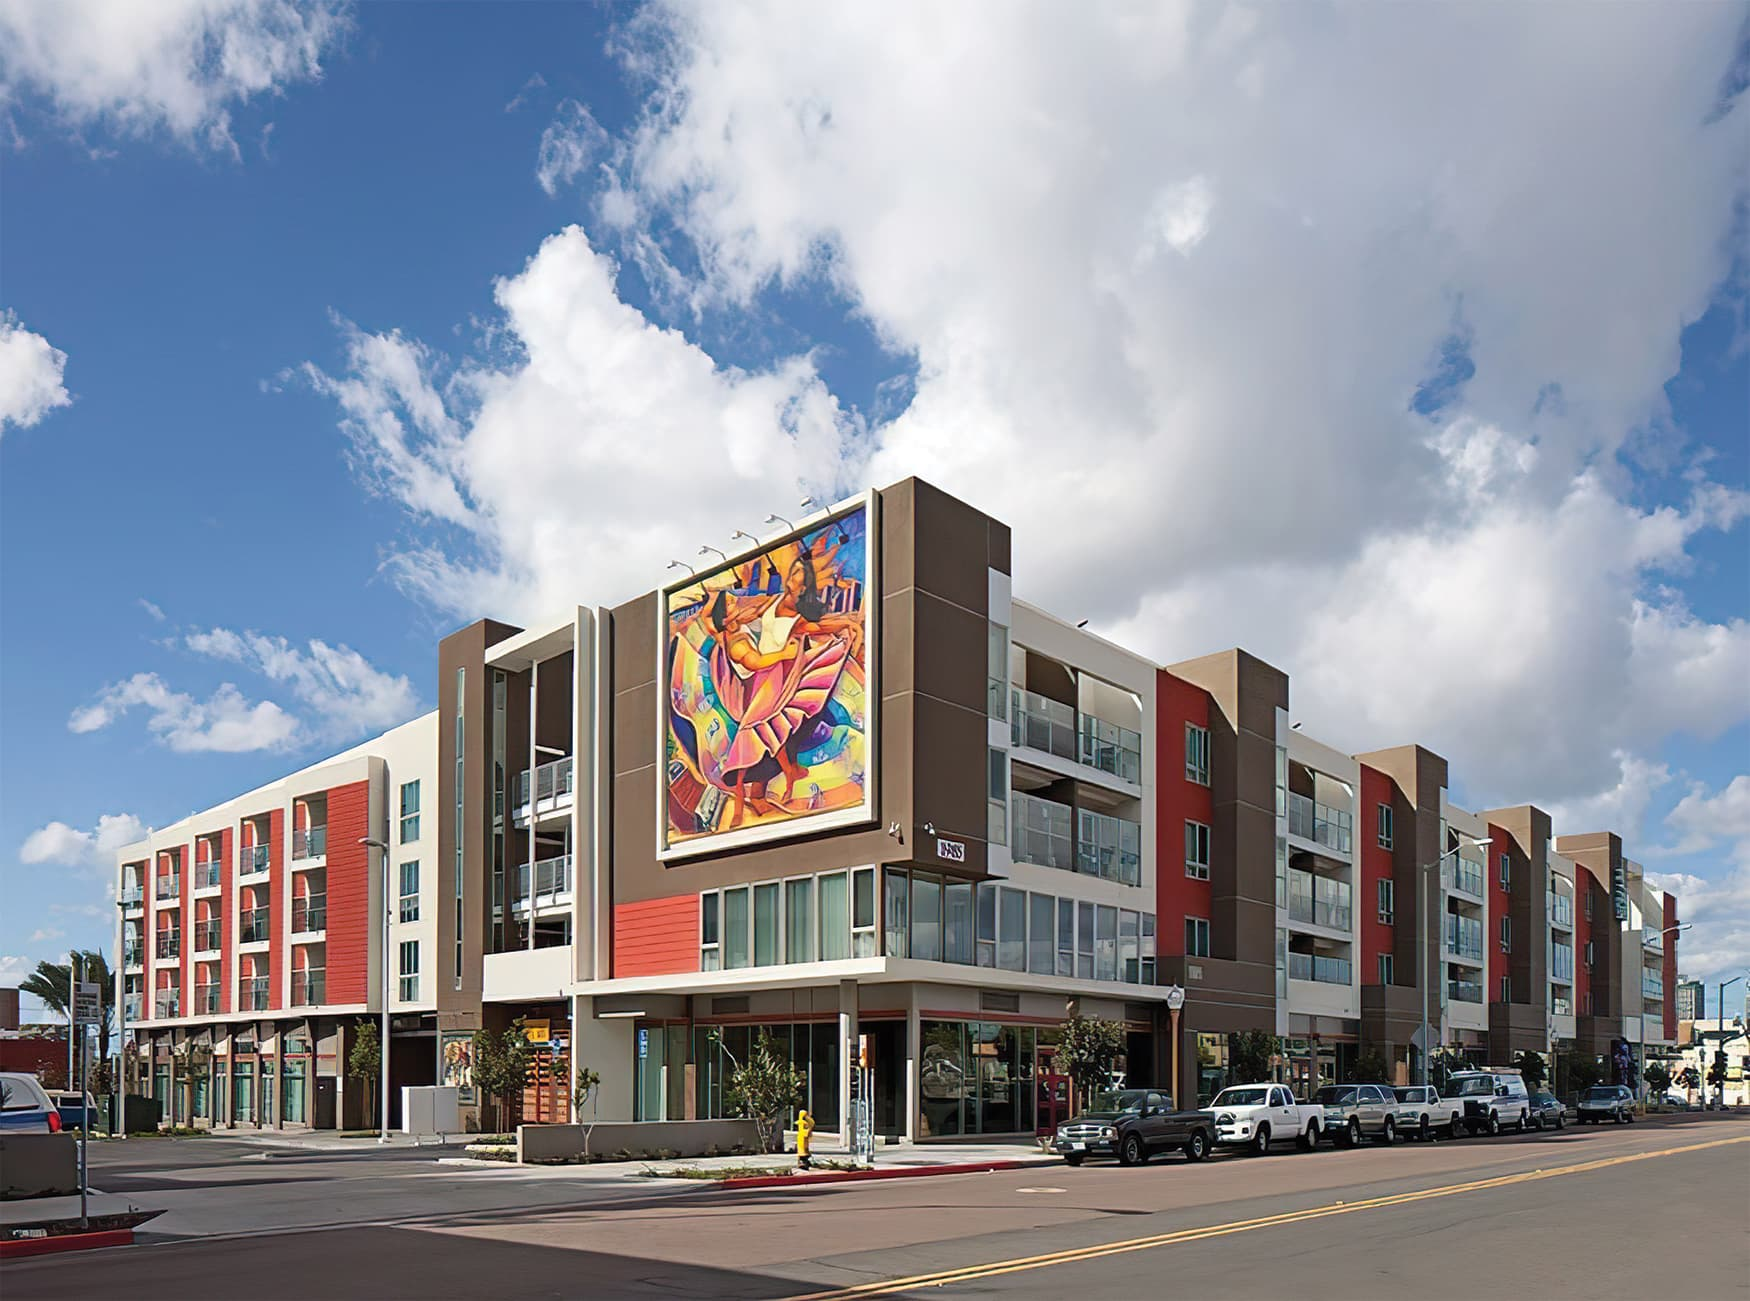 RSM Design worked with Shea Properties to prepare wayfinding signage, environmental graphics, and placemaking elements for Mercado del Barrio, a residential and commercial mixed-use development located in San Diego, California. Public Art.